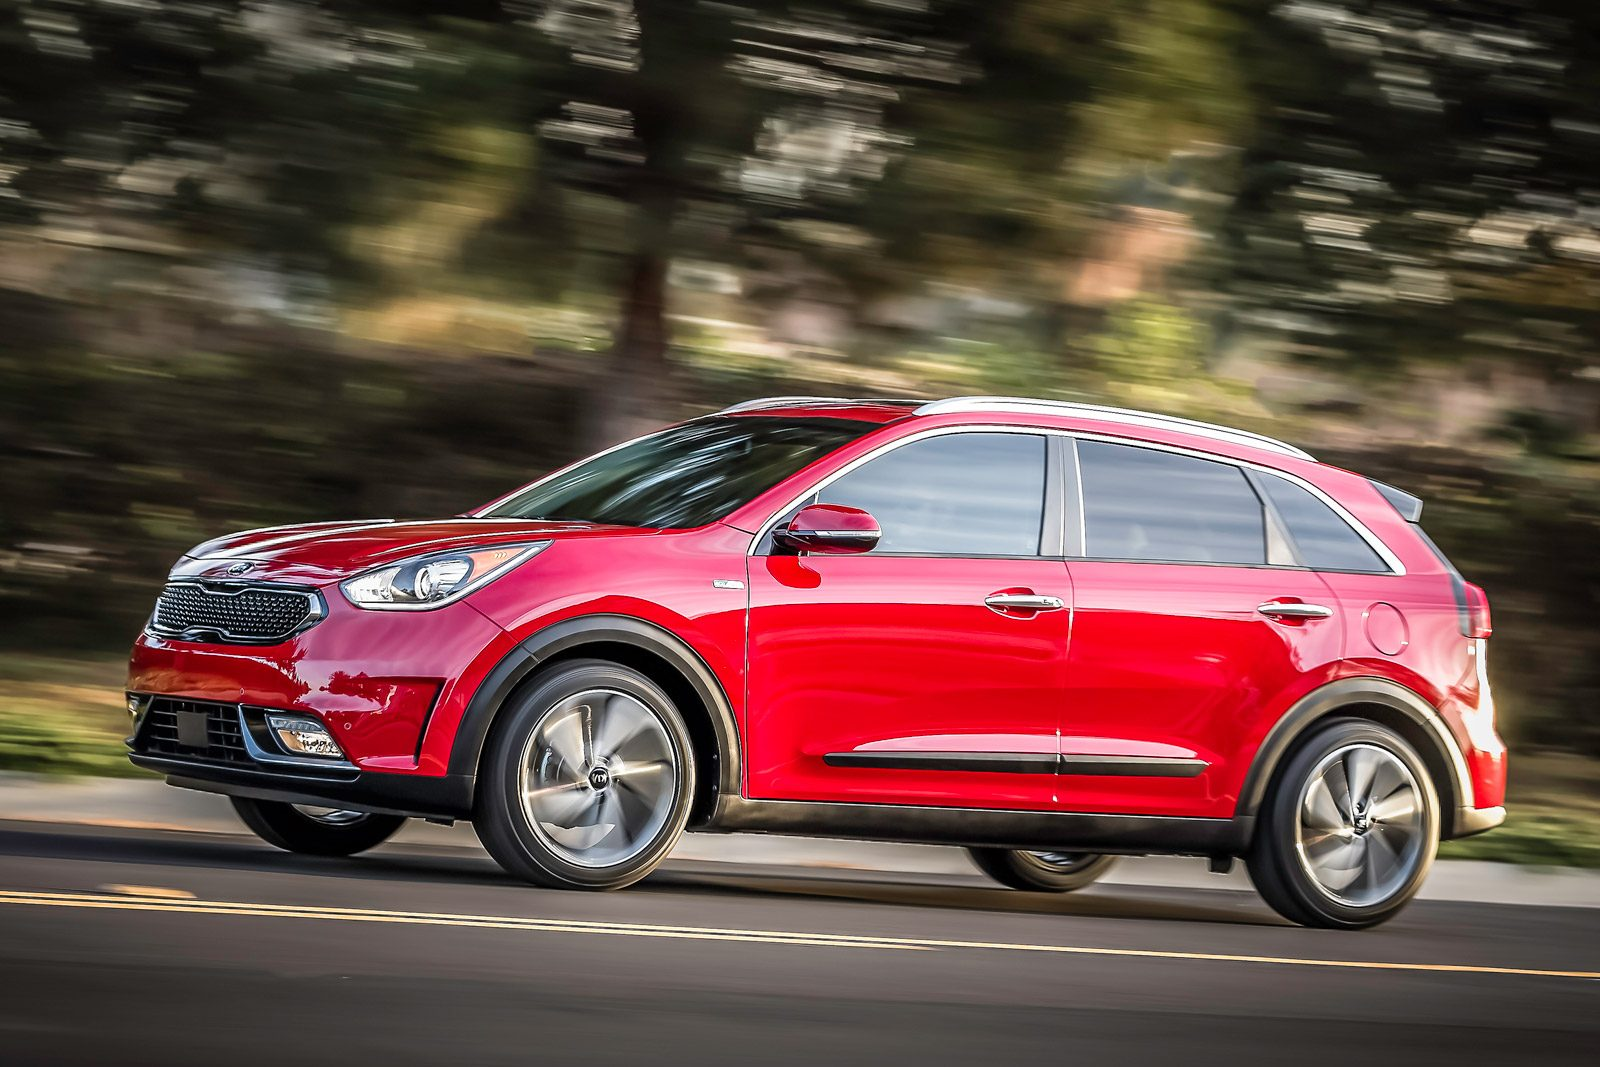 The kia niro is of the newest faces in the small suv category but it s already the most appealing tying for second place are the buick encore and kia